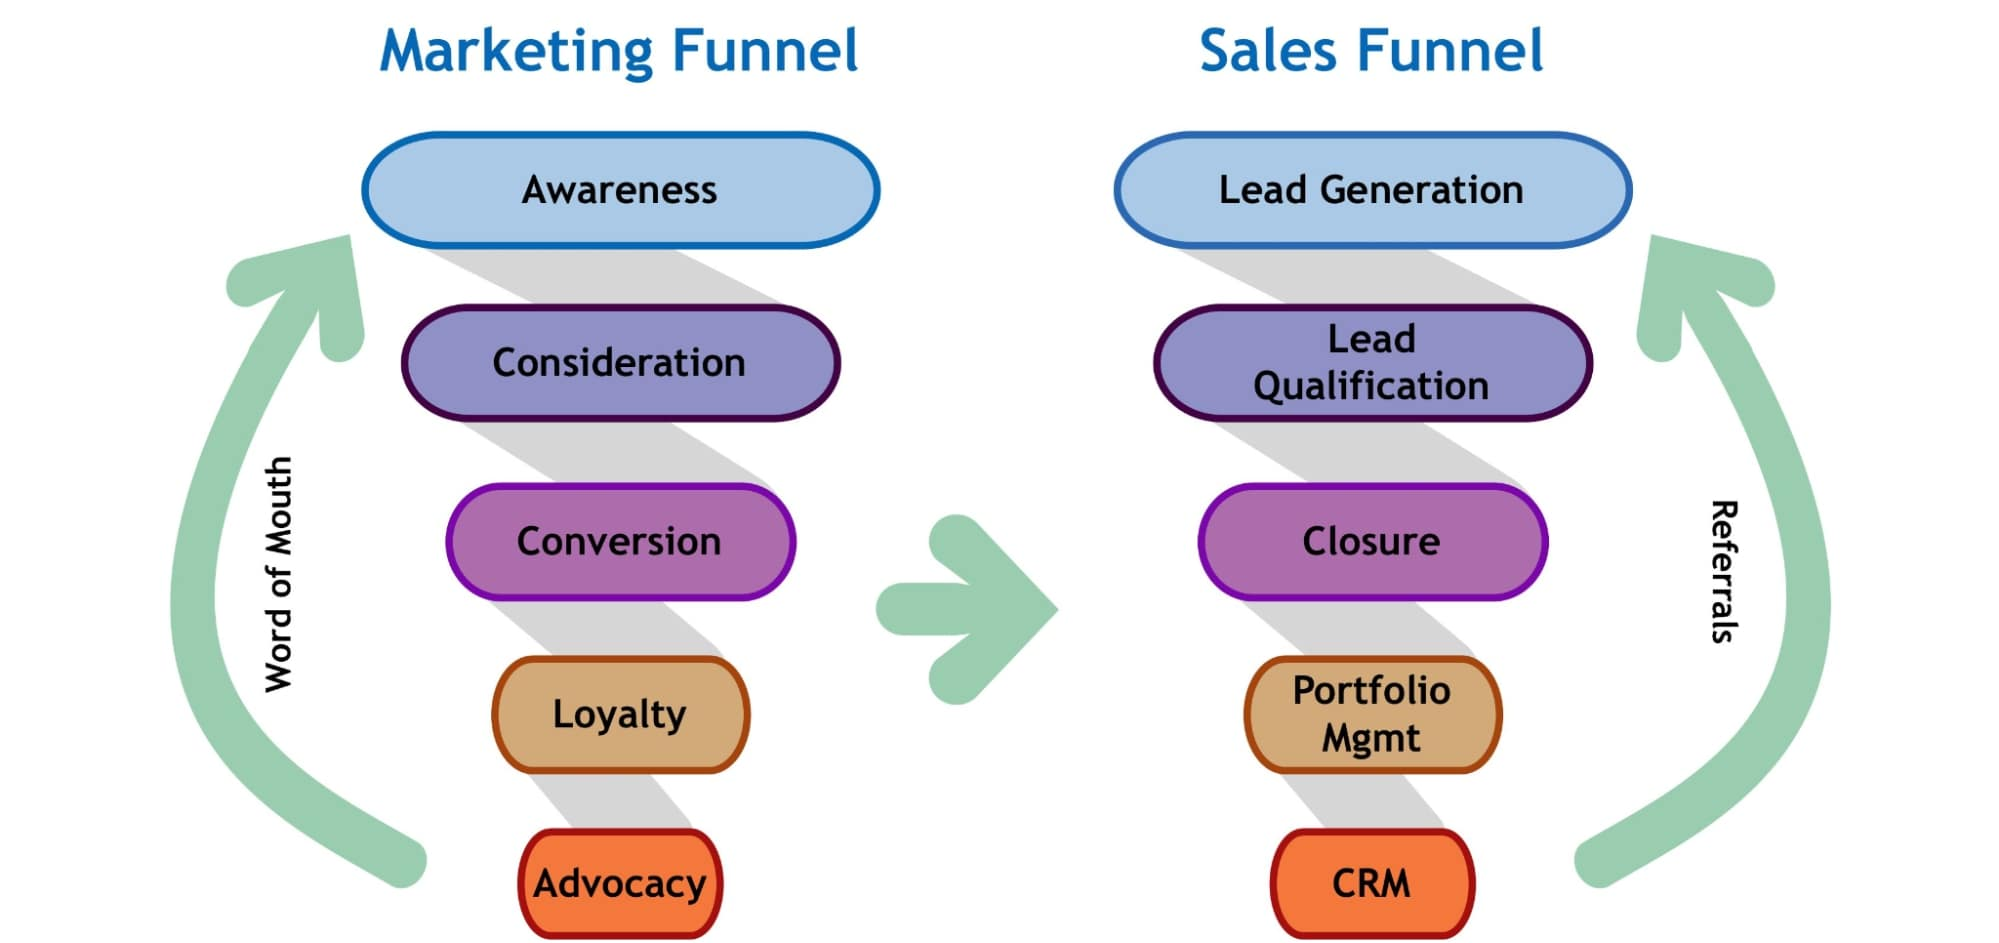 Marketing Funnel and Sales Funnel - The differences